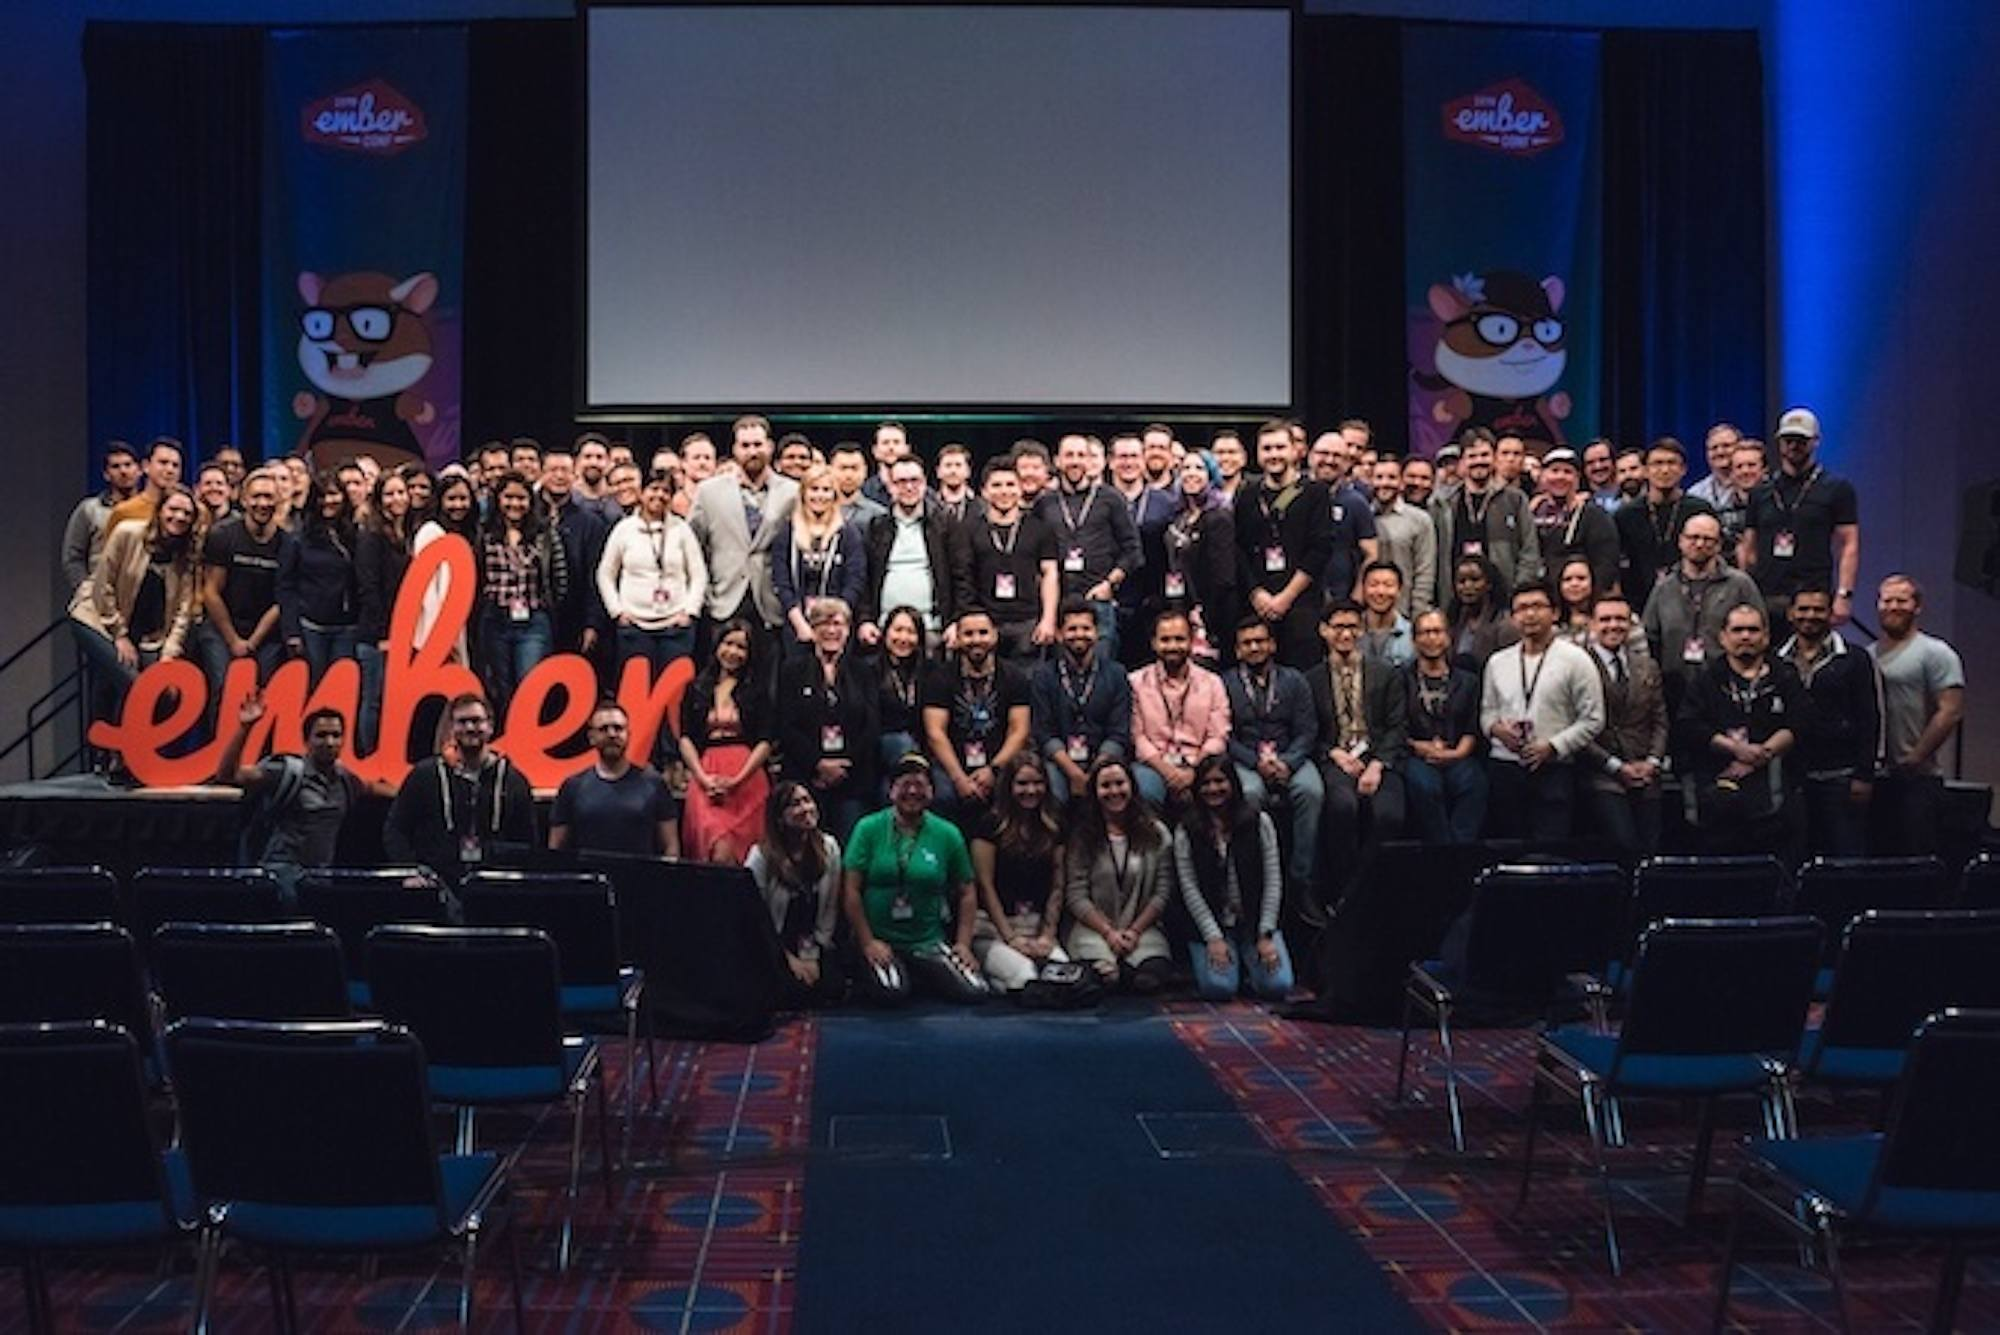 Big Emberconf Photo